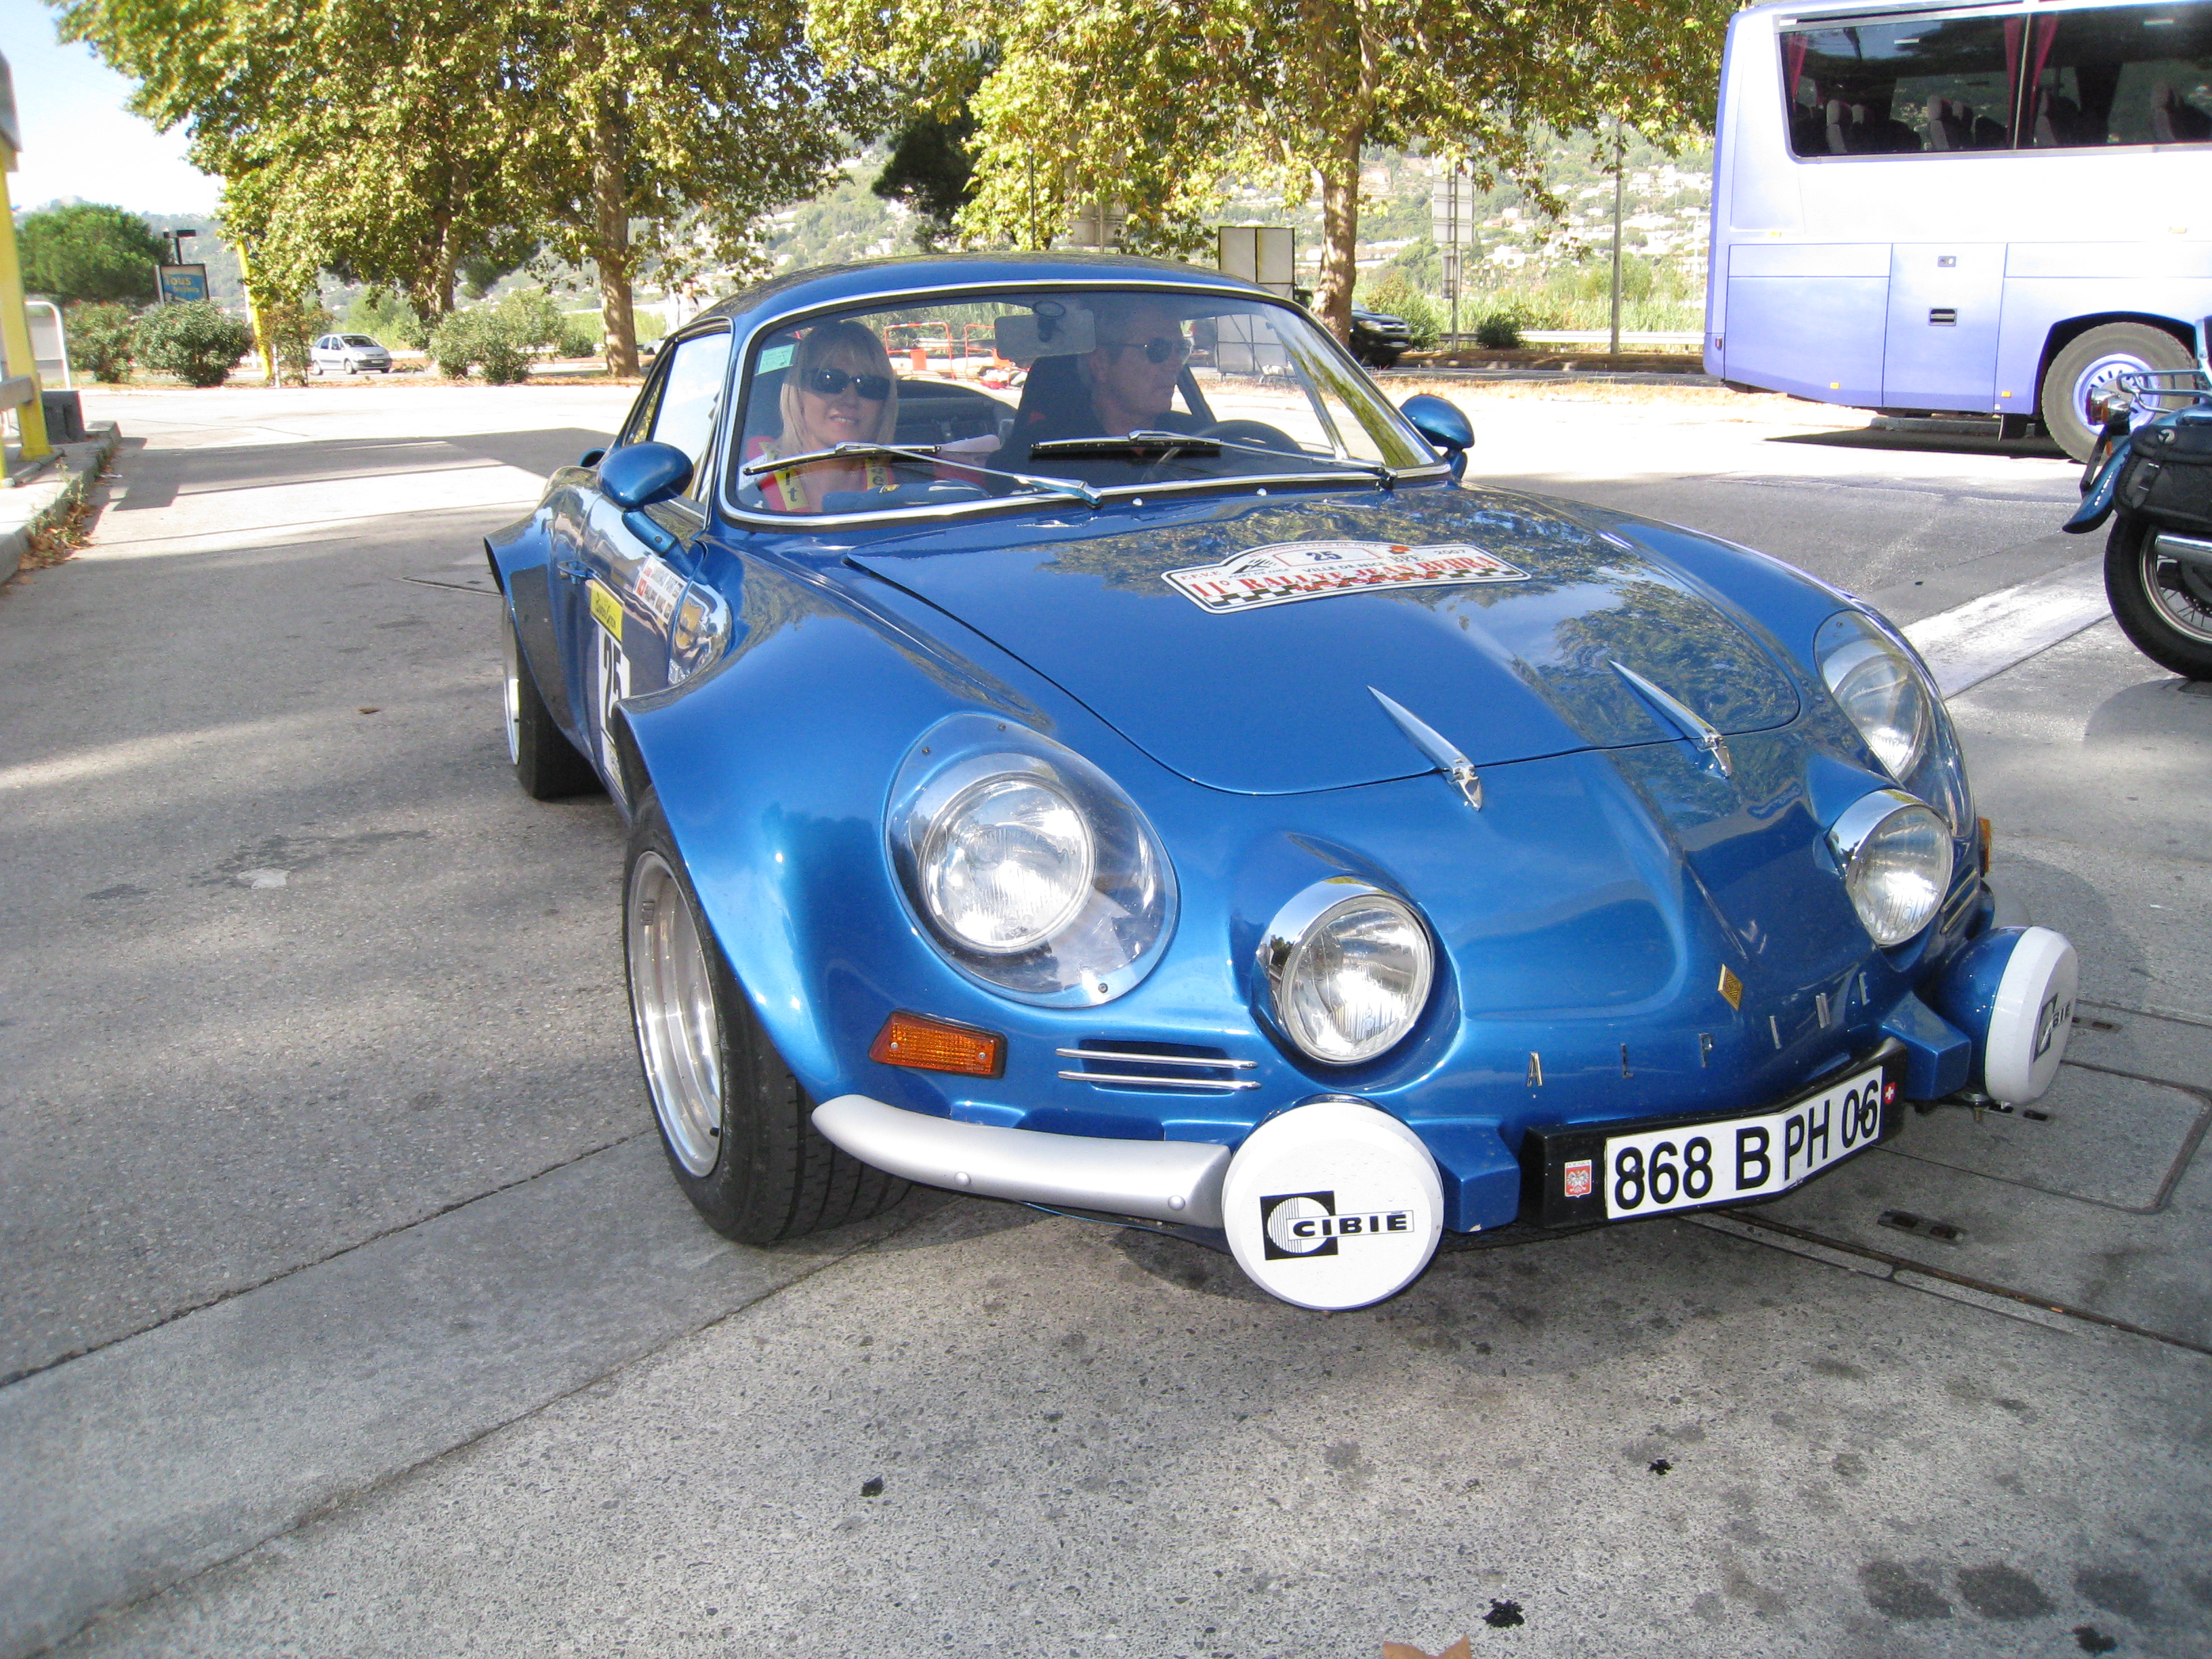 file alpine renault a110 wikipedia